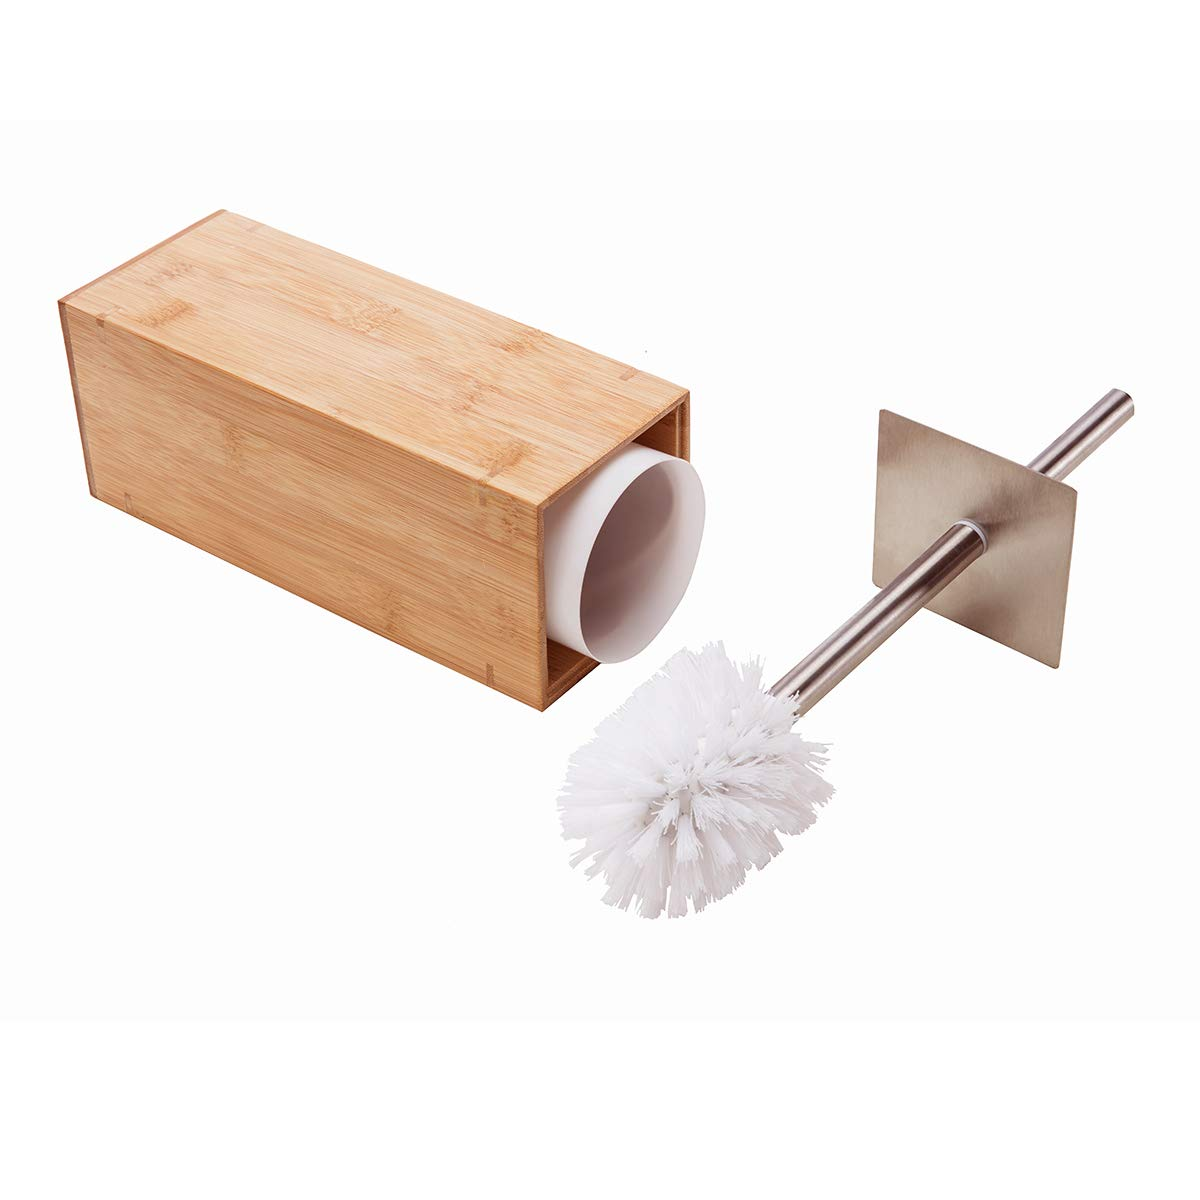 GOBAM Toilet Brush and Holder Stainless Steel Handle and Lid for All Toilet Types with Sanitary Storage,Bamboo (Natural) by GOBAM